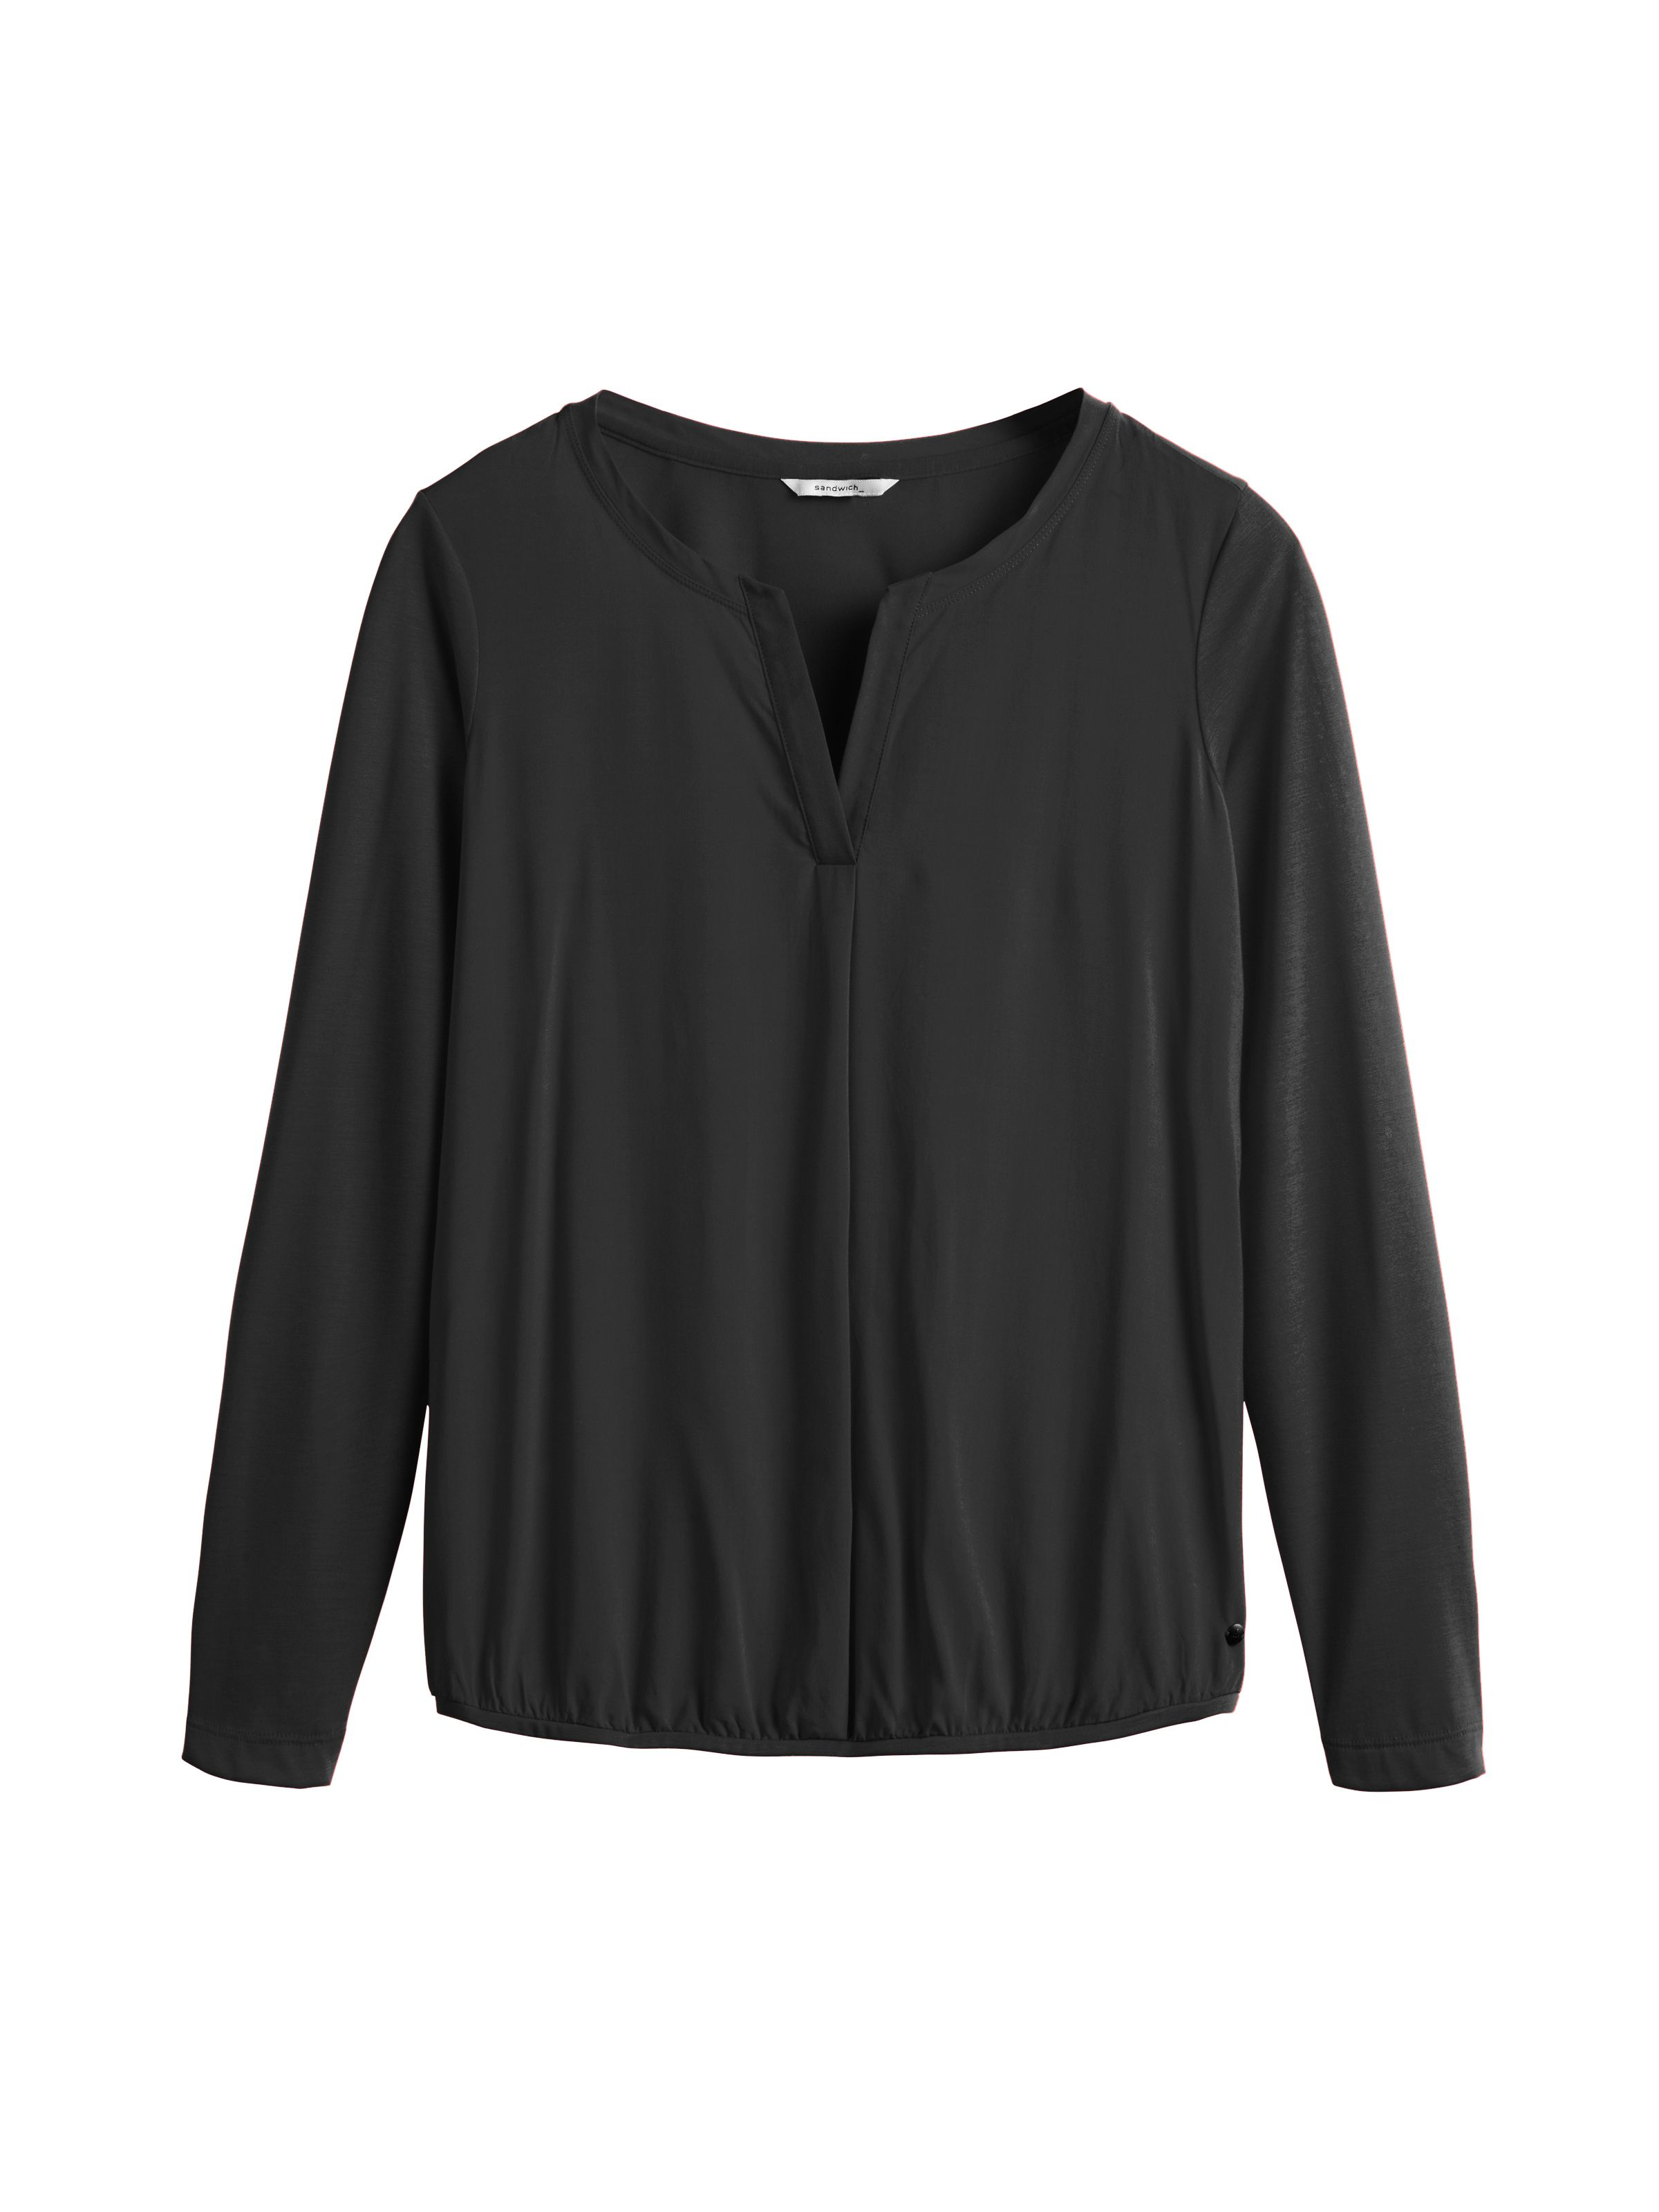 Sandwich Silky panel long sleeve jersey top, Black